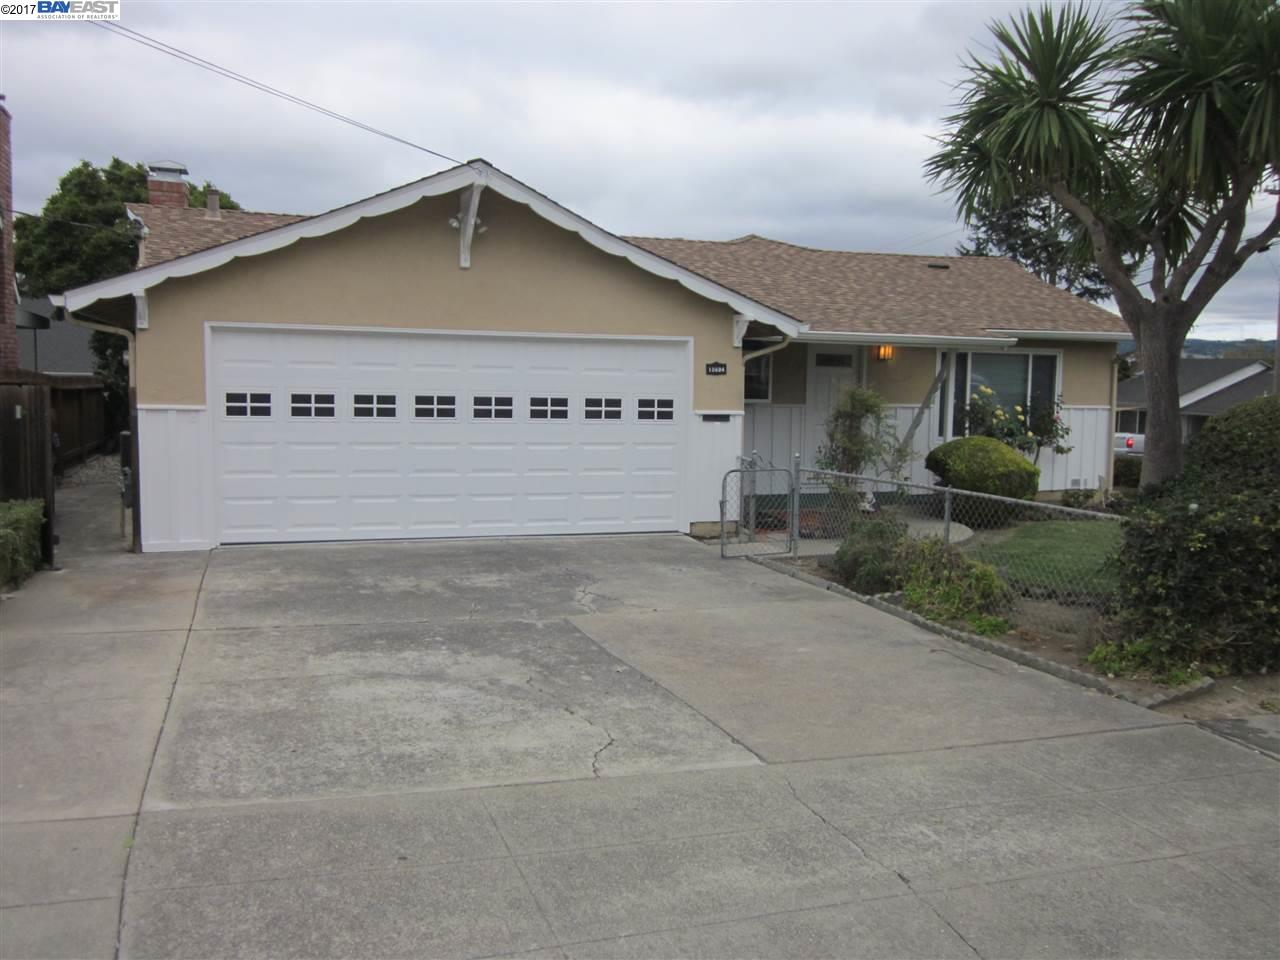 19694 Bernal St. | CASTRO VALLEY | 1600 | 94546